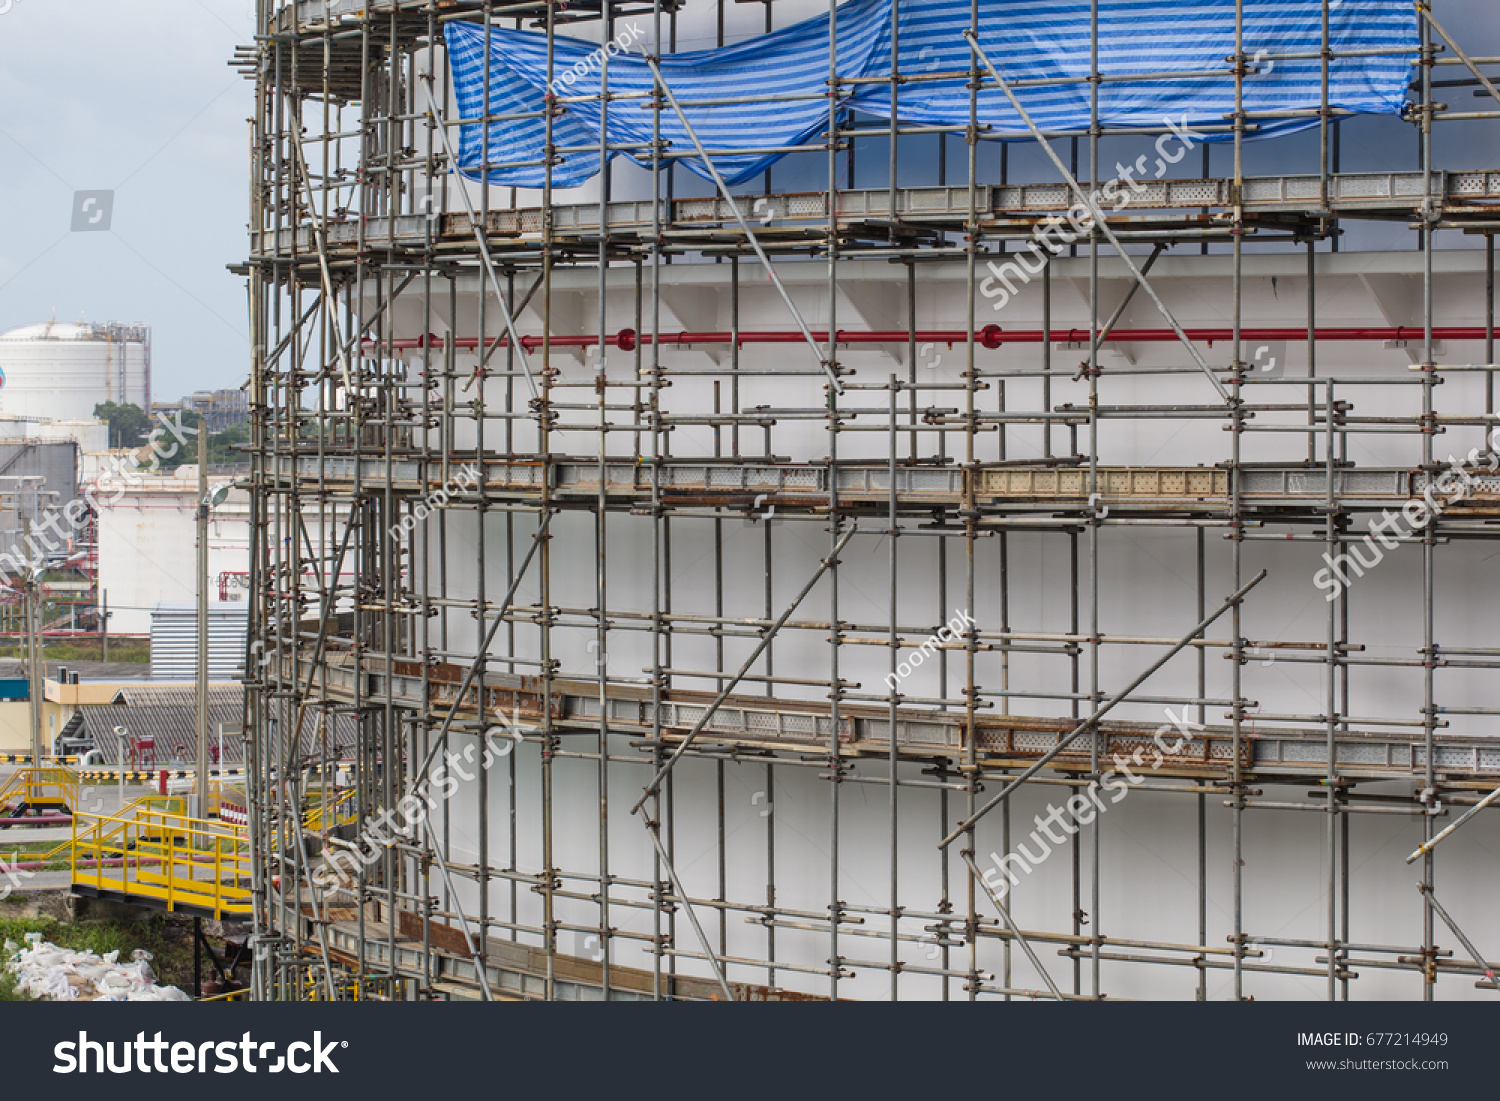 Floor Scaffolding Storage Tank Oil And Gas Refinery